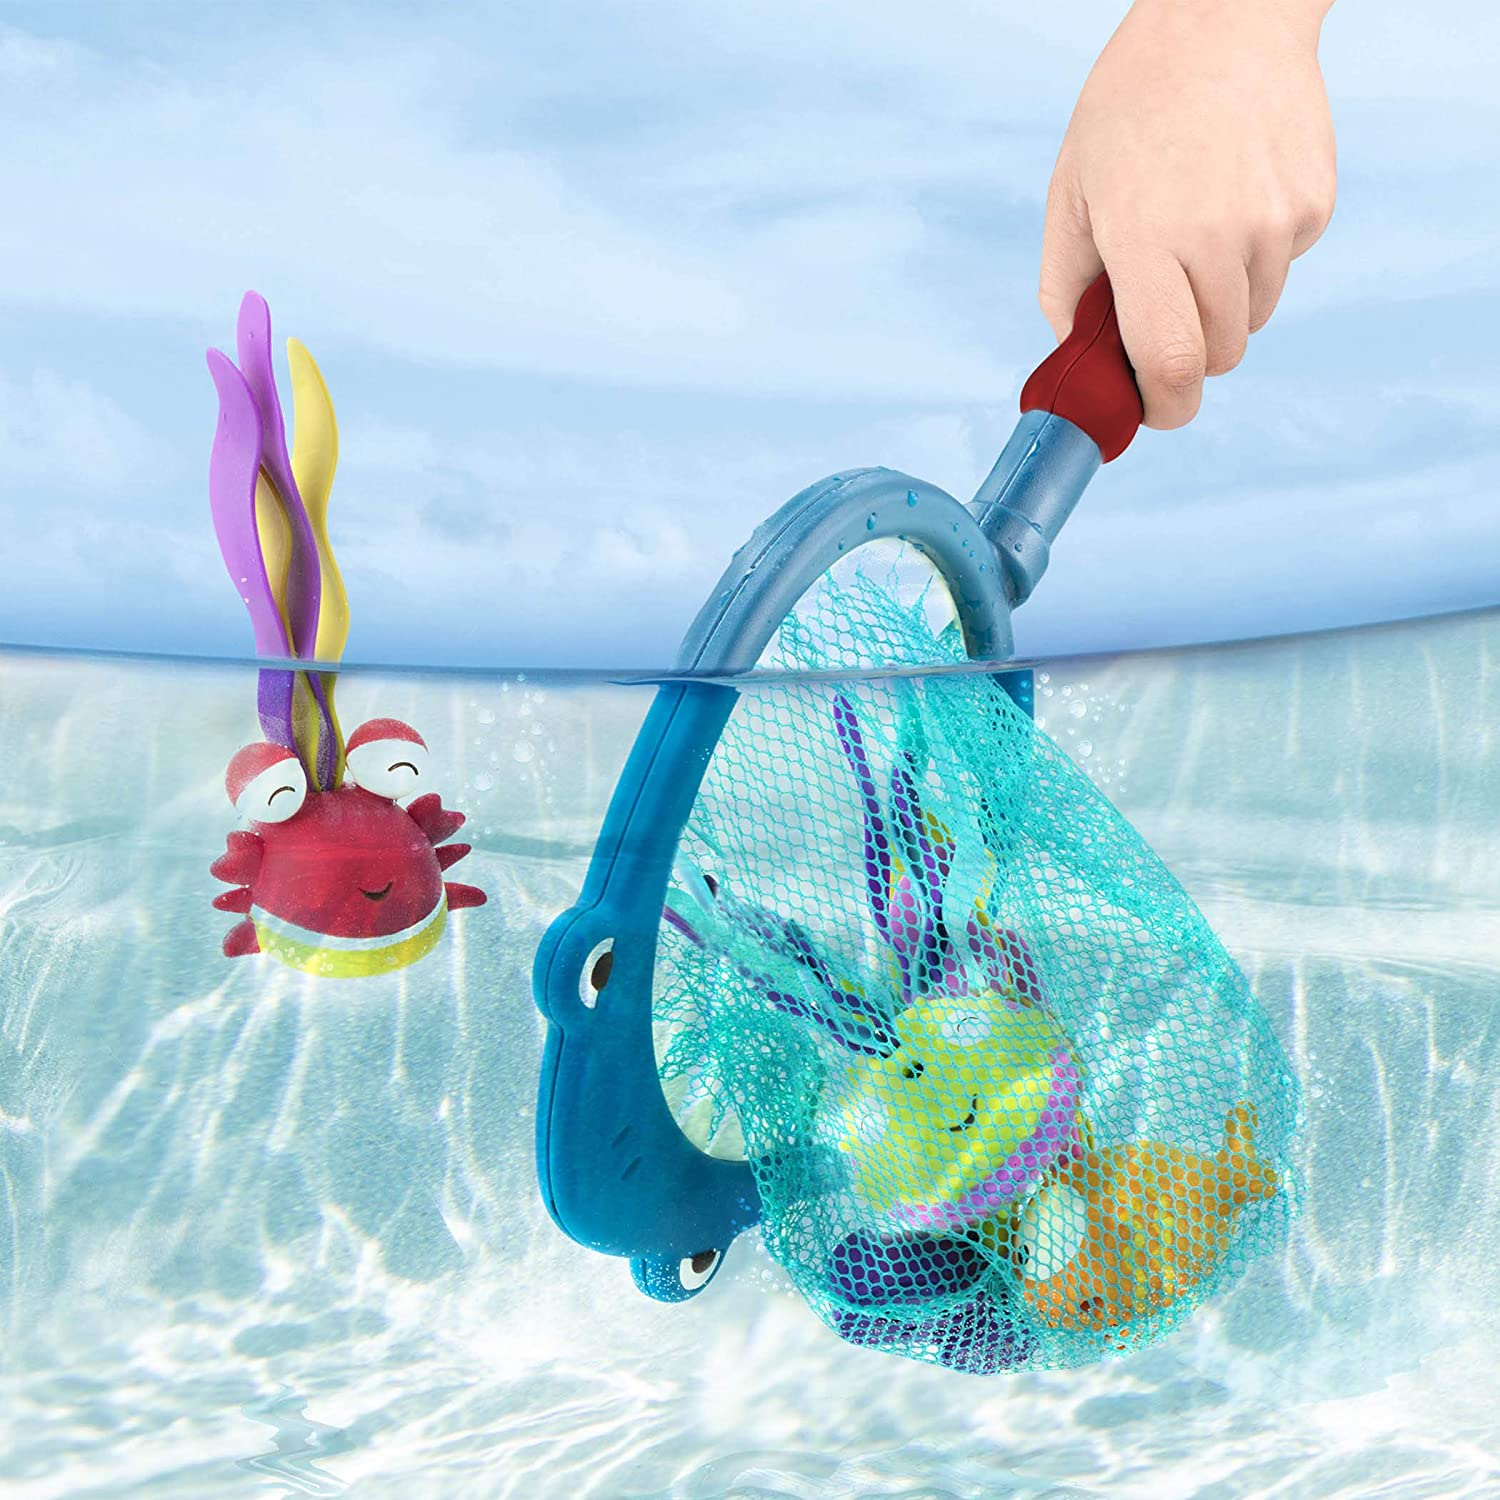 B 5-Pieces toys by Battat Shark Scoop-a-Diving Pool Toys-1 Shark Net and 4 Water Toys for Kids 3+